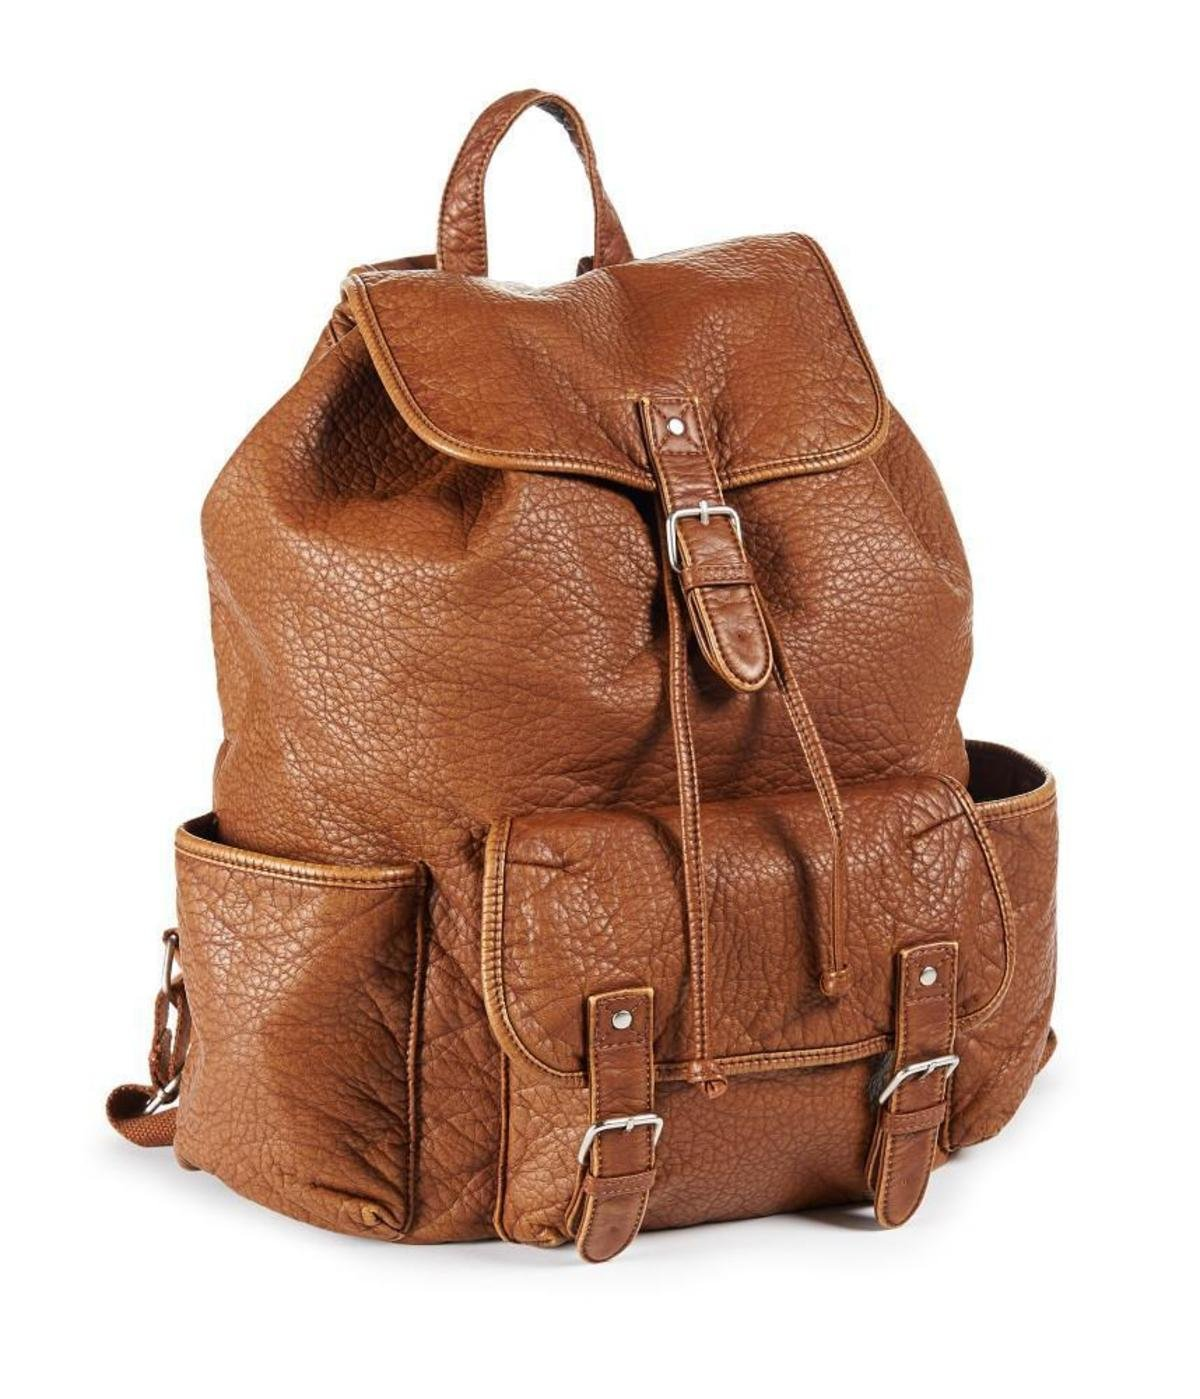 Leather Brown Backpack tpowThJo